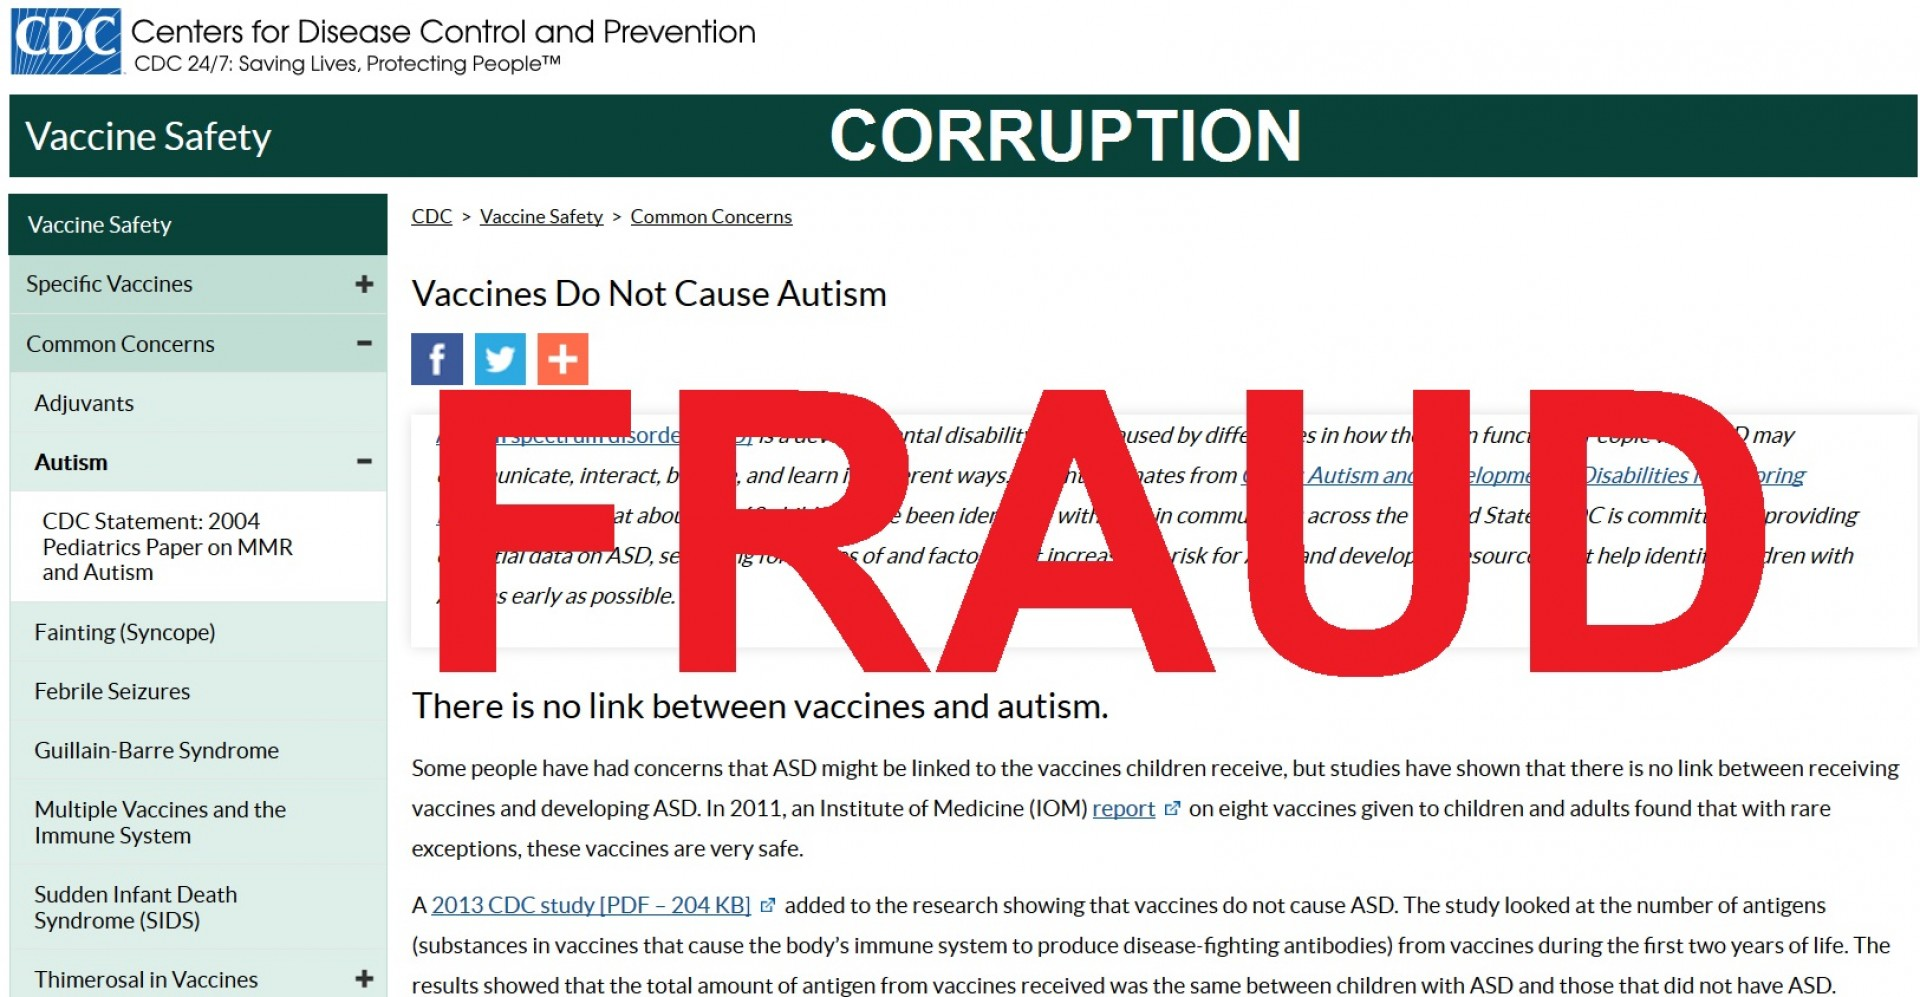 018 Fraud Corruption Research Paper Marvelous Vaccine Topics Example 1920